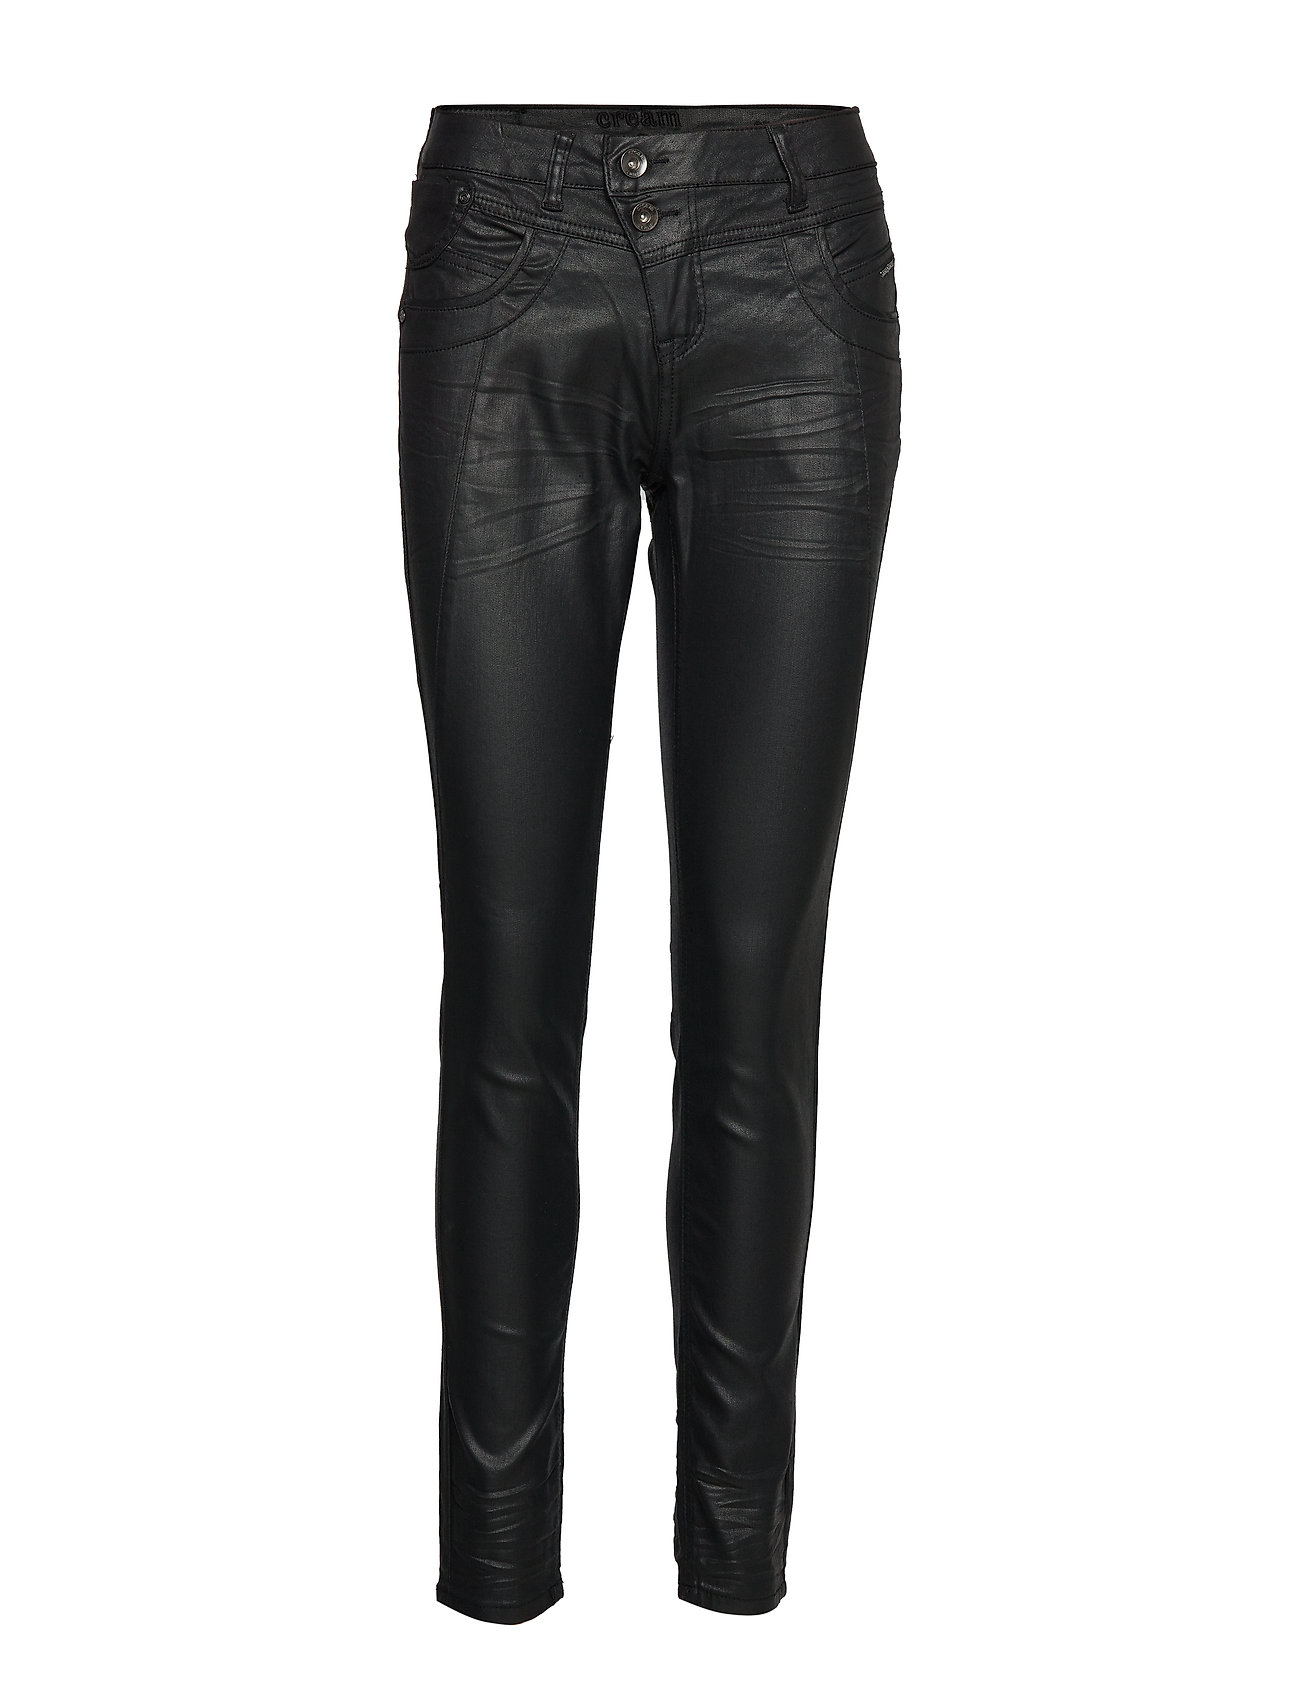 Cream Corin coated jeans-baiily fit - PITCH BLACK